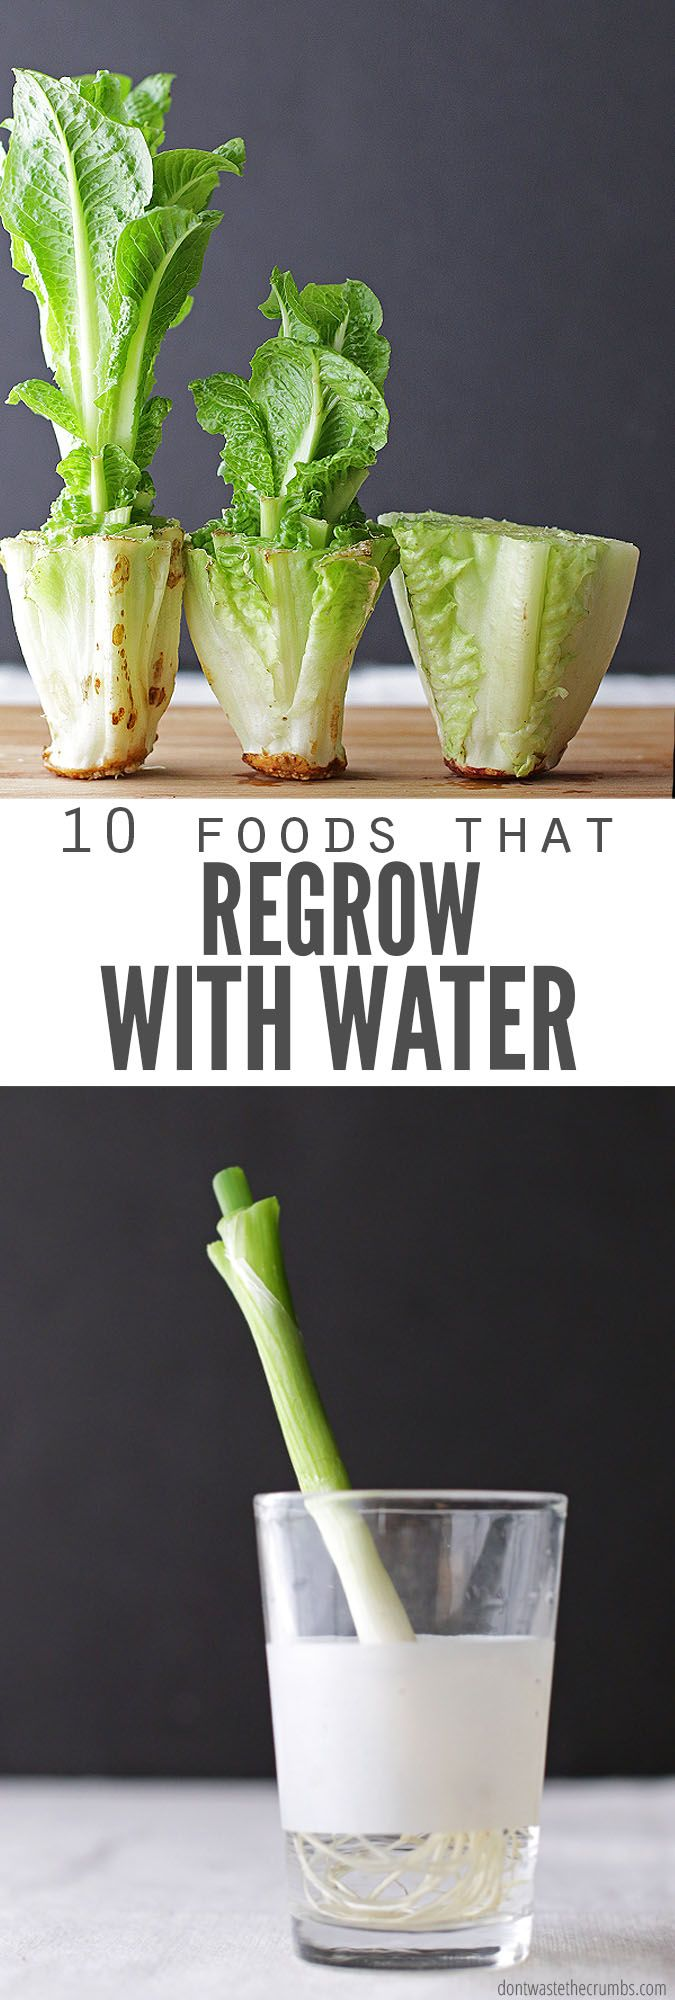 How to Regrow Food in Water: 10 Foods that Regrow Without Dirt #plantingdiysimple